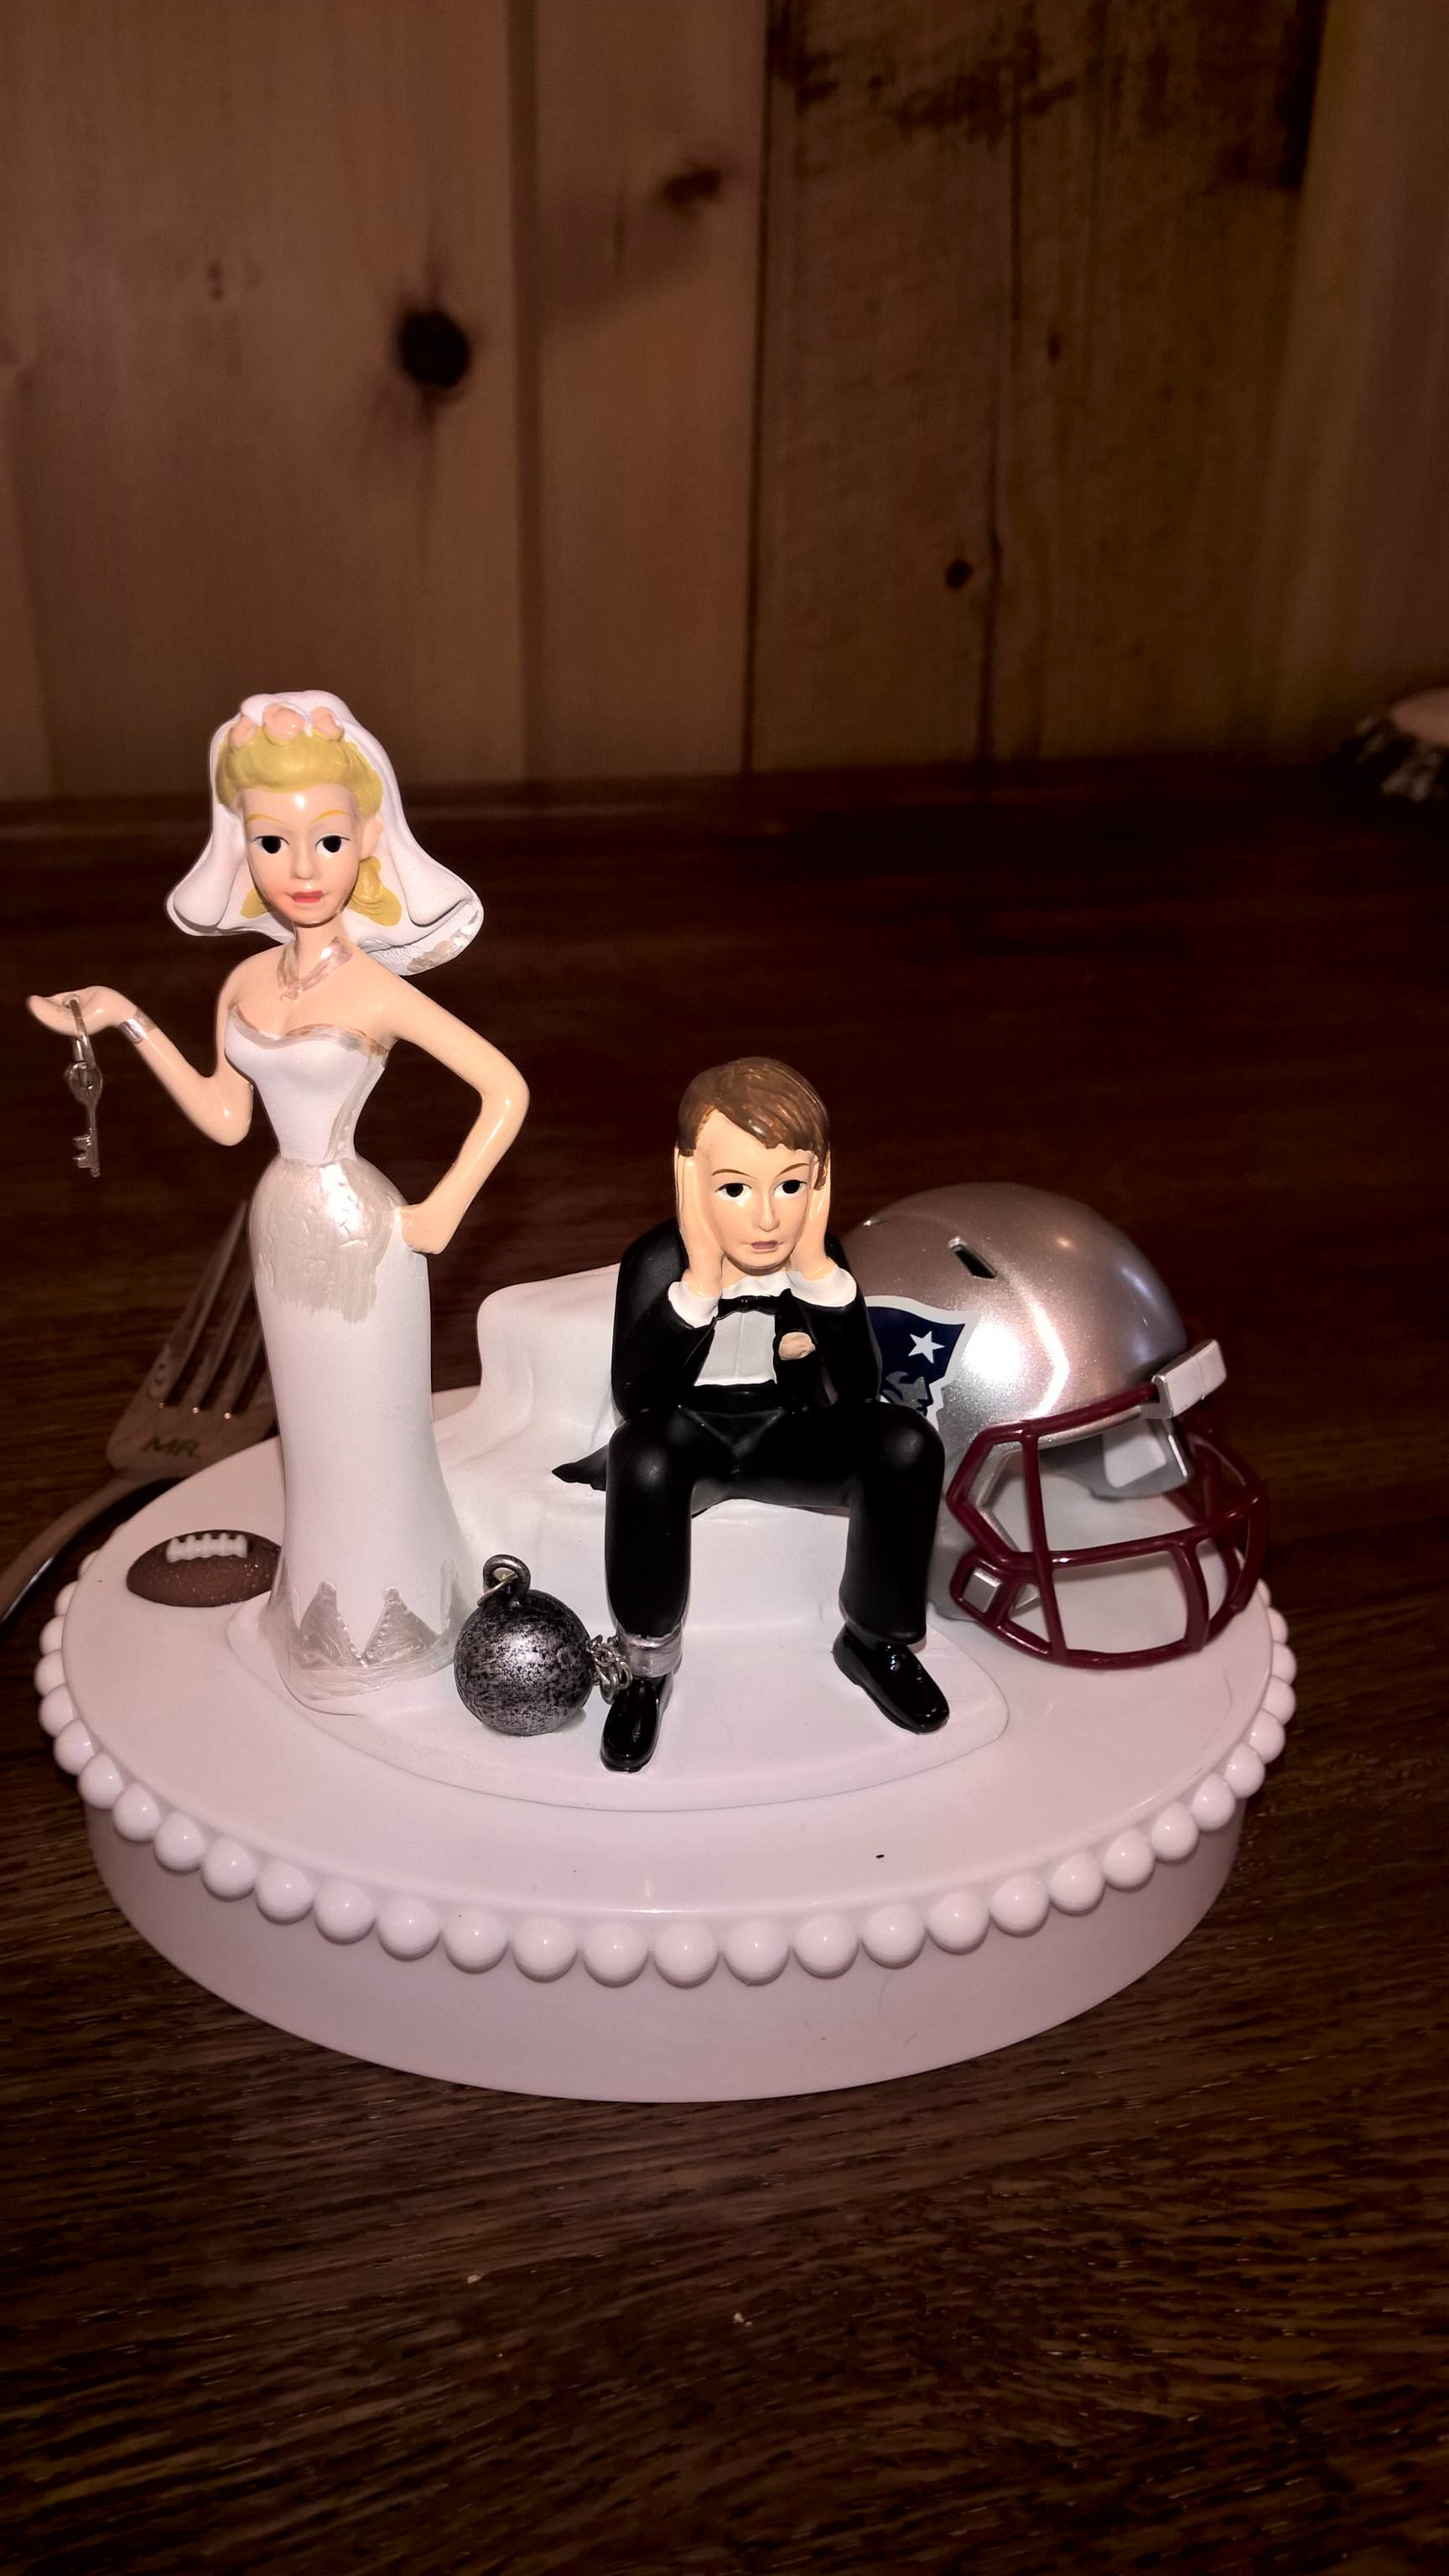 Cake topper with bride and unhappy groom with ball and chain on his ankle.. Maybe they made some wedding planning mistakes.